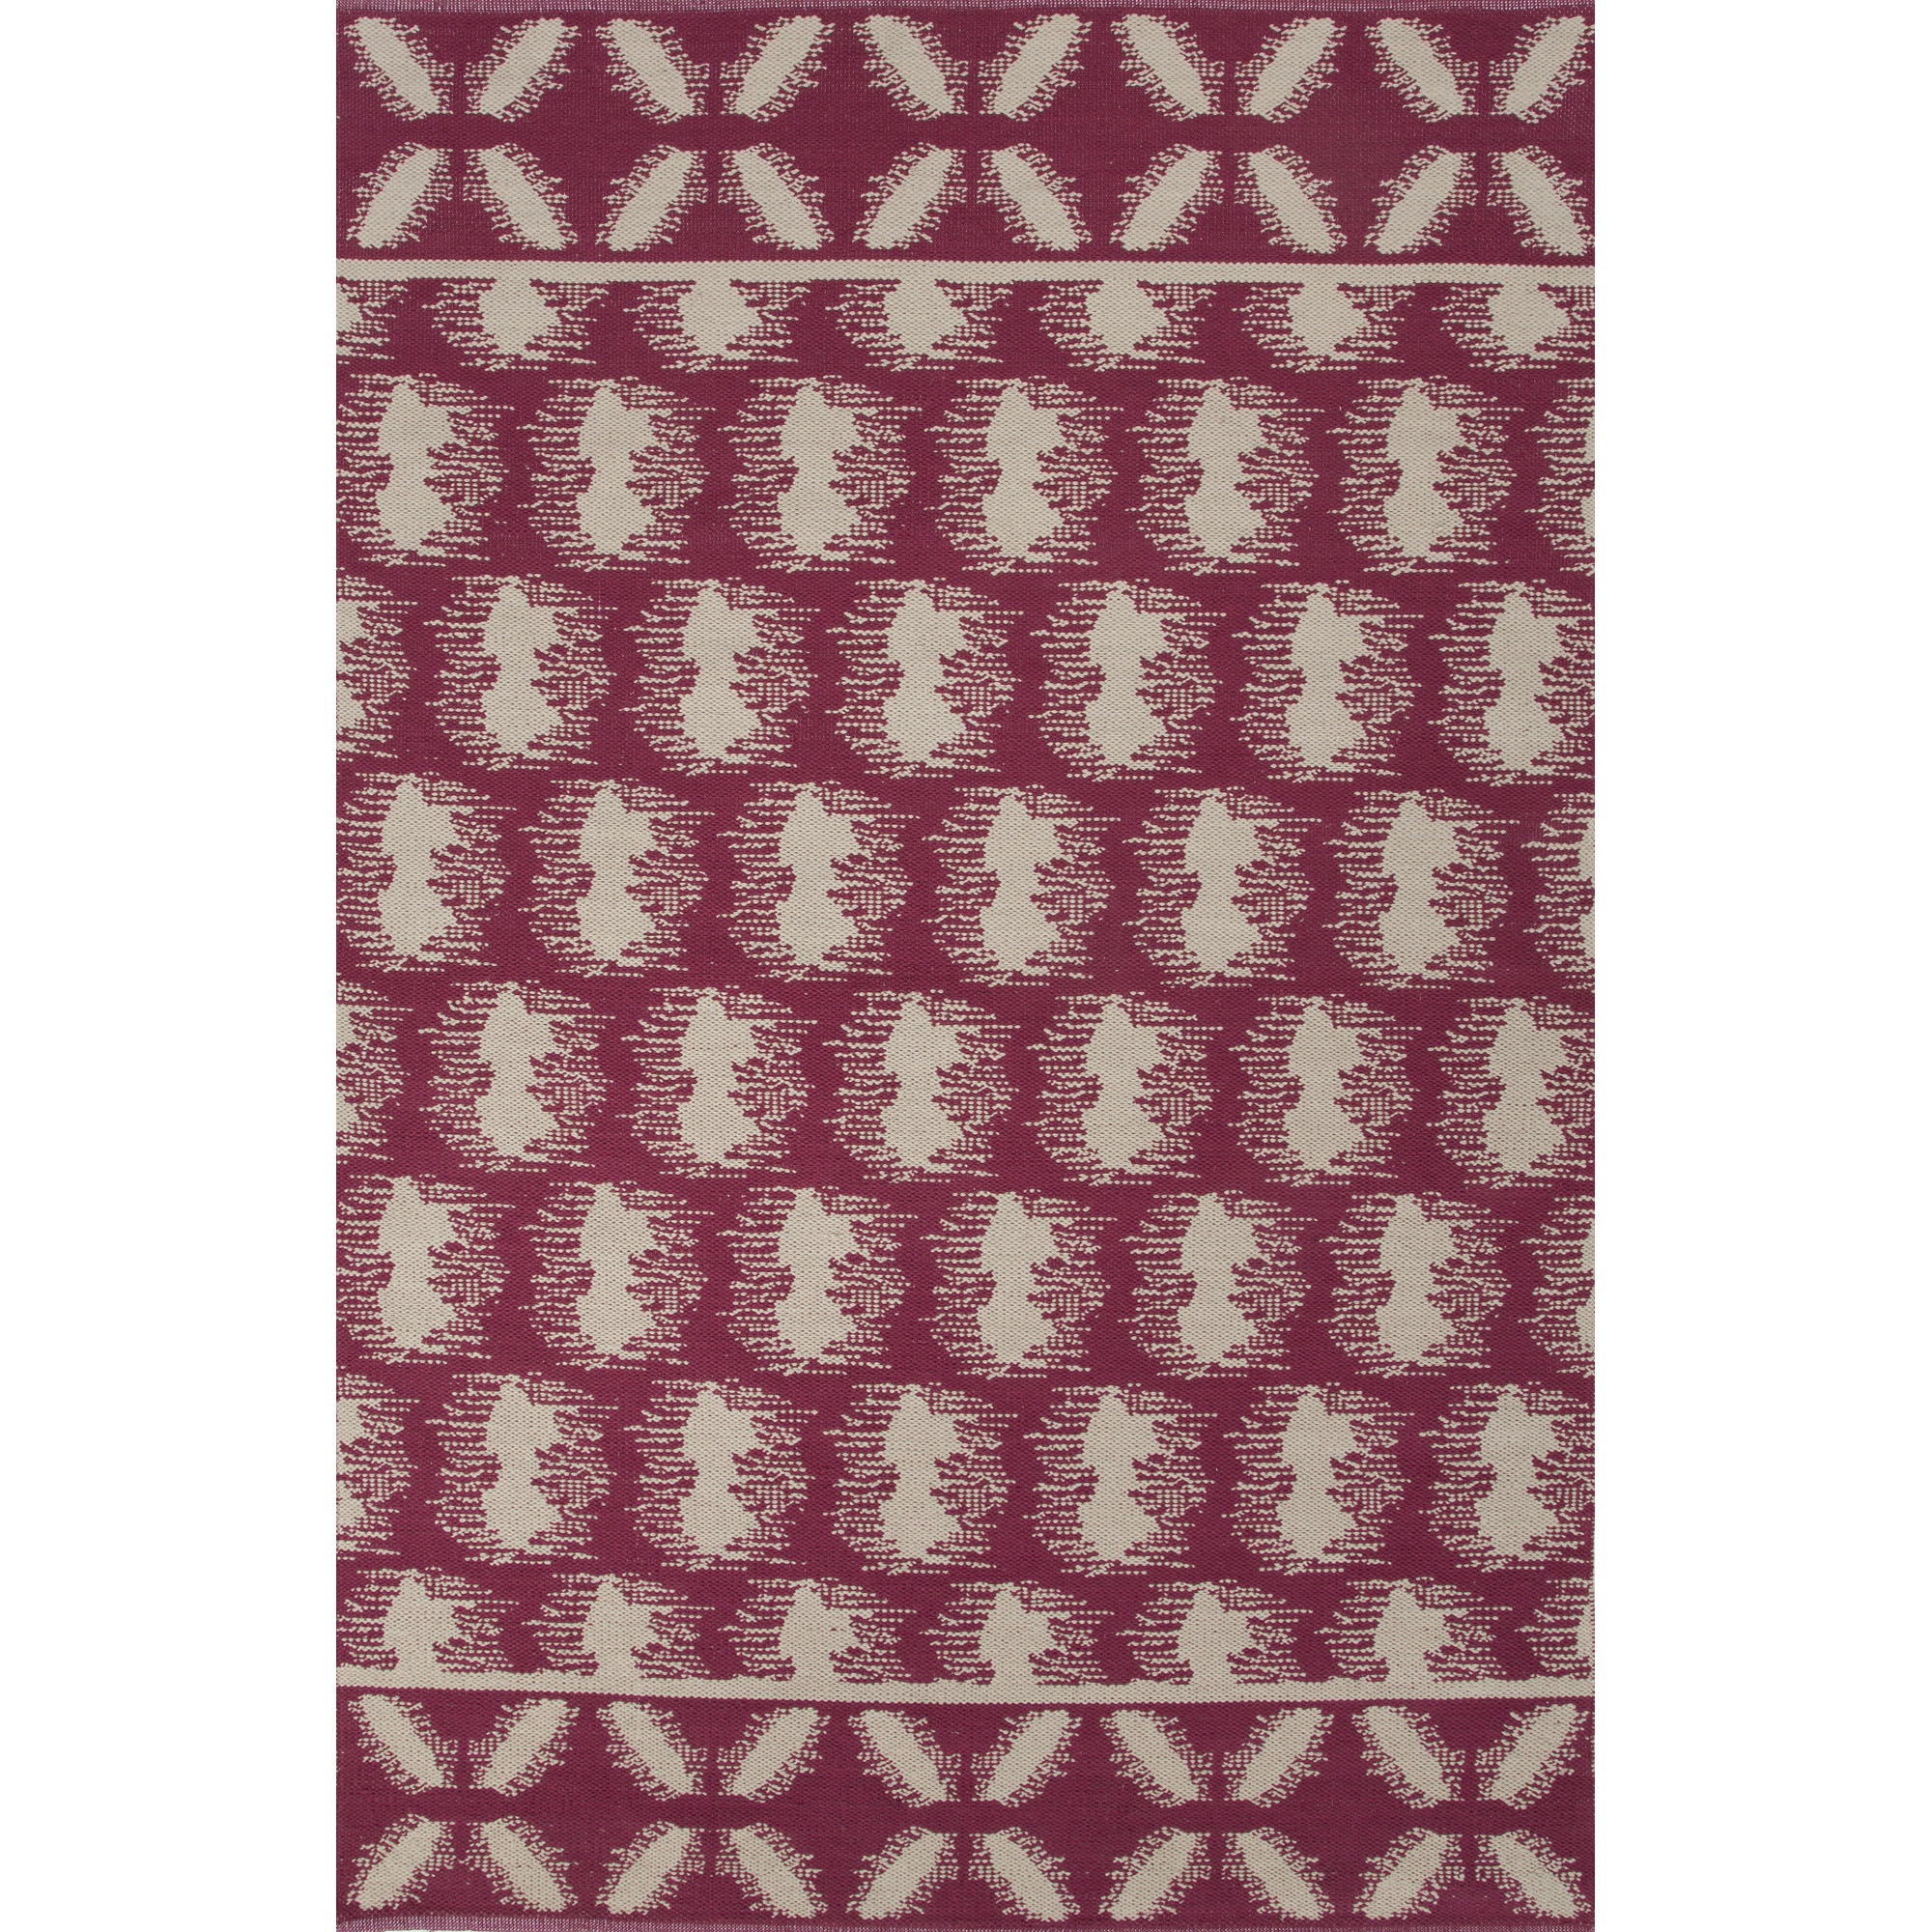 JAIPUR Rugs Traditions Modern Cotton Flat Weave 8 x 11 Rug - Item Number: RUG122231